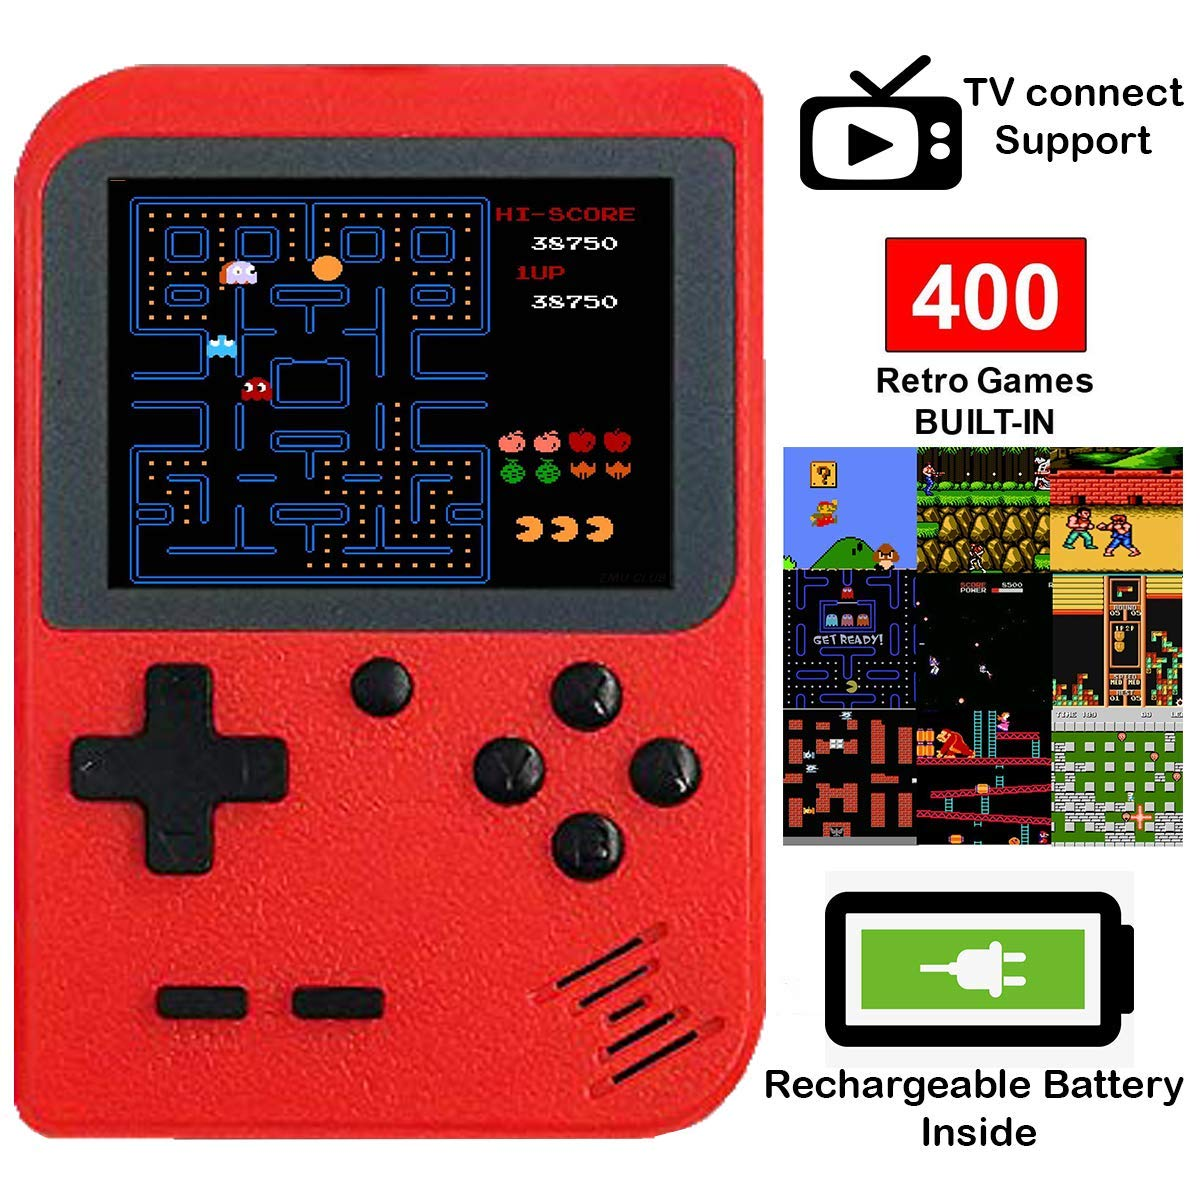 DigitCont Retro Mini Handheld Arcade, Built-in with 400 Classic Games Double Players Mode Miniature Console Handheld Portable Game Cabinet Machine Rechargeable Battery Inside Support Connect TV Red by DigitCont (Image #1)